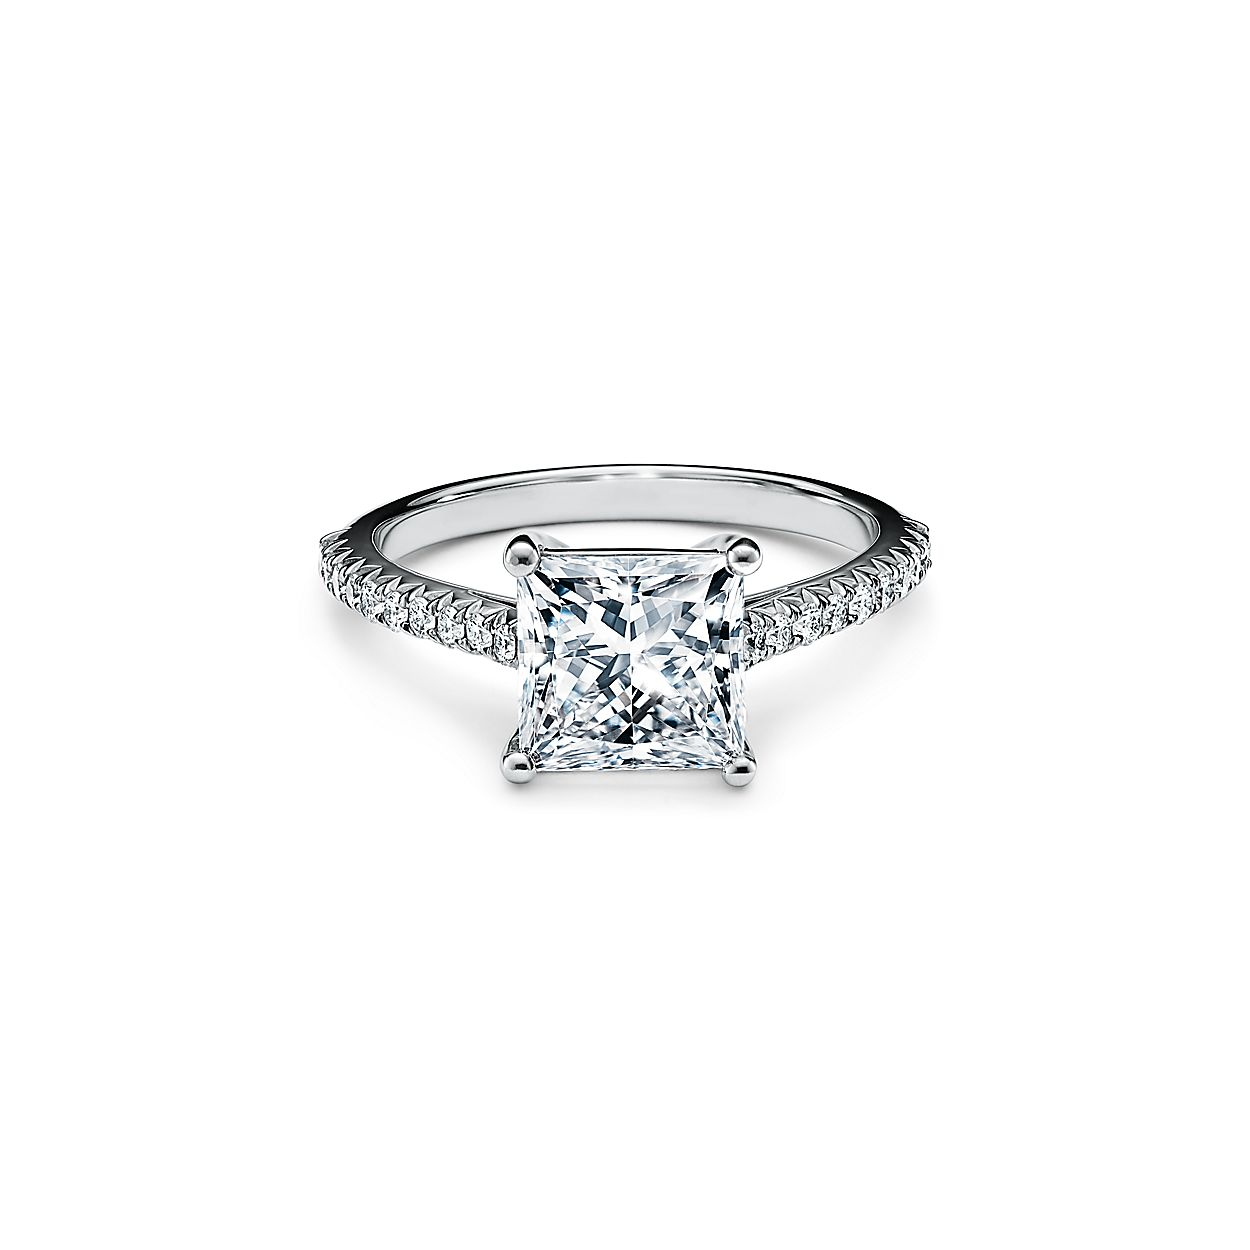 Tiffany Novo Princess Cut Engagement Ring With A Pave Set Diamond Band In Platinum